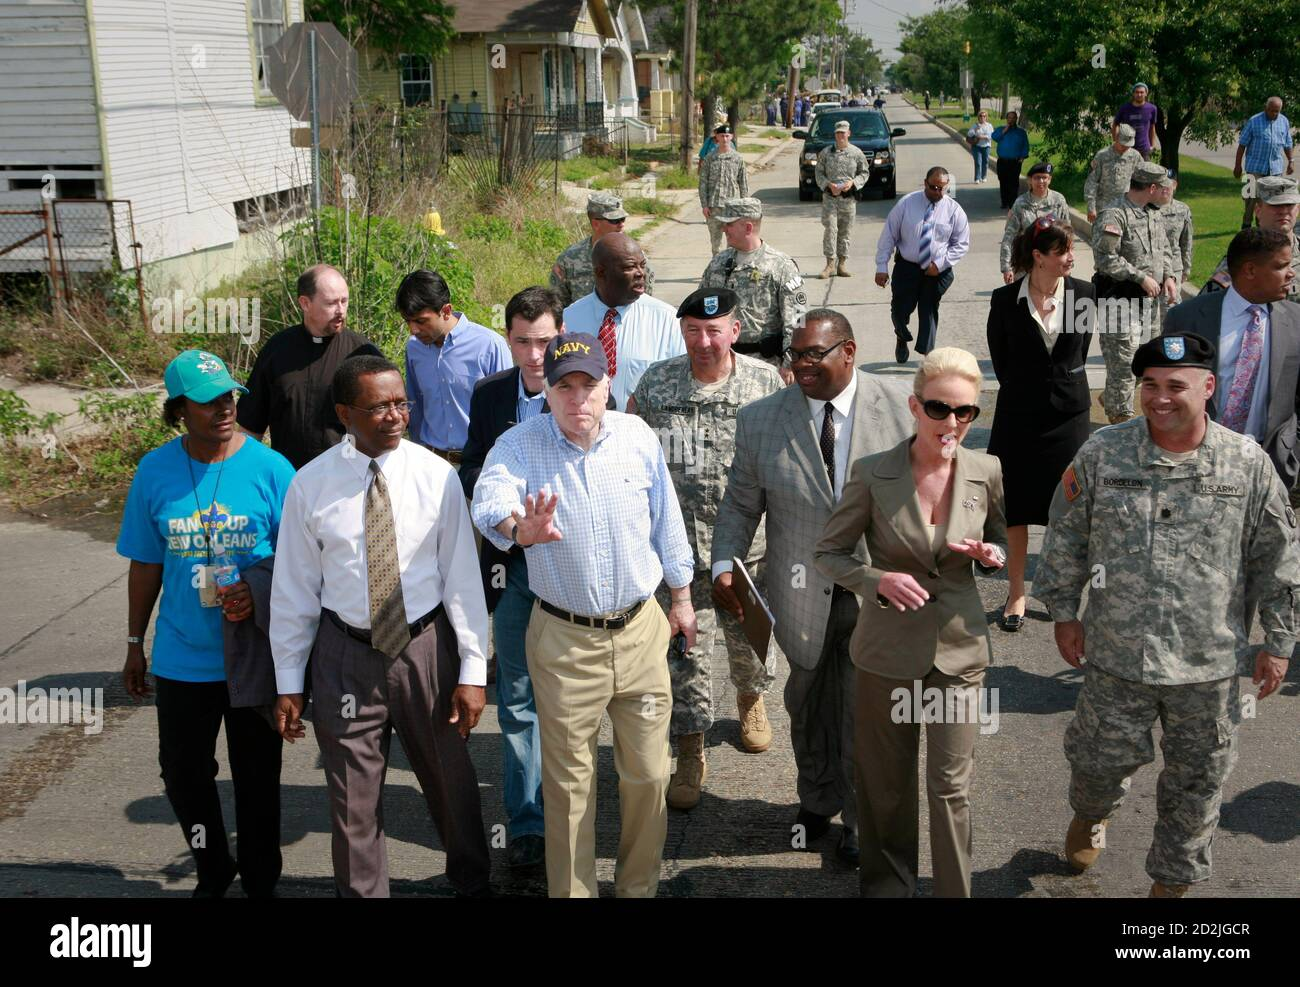 US Republican presidential candidate Senator John McCain (R-AZ) (front 3rd L) gestures for trucks carrying press members to move as his wife, Cindy (2nd R), talks to a national guardsman during a walking tour of the Lower Ninth Ward of New Orleans, Louisiana April 24, 2008. REUTERS/Lee Celano (UNITED STATES)  US PRESIDENTIAL ELECTION CAMPAIGN 2008 (USA) Stock Photo